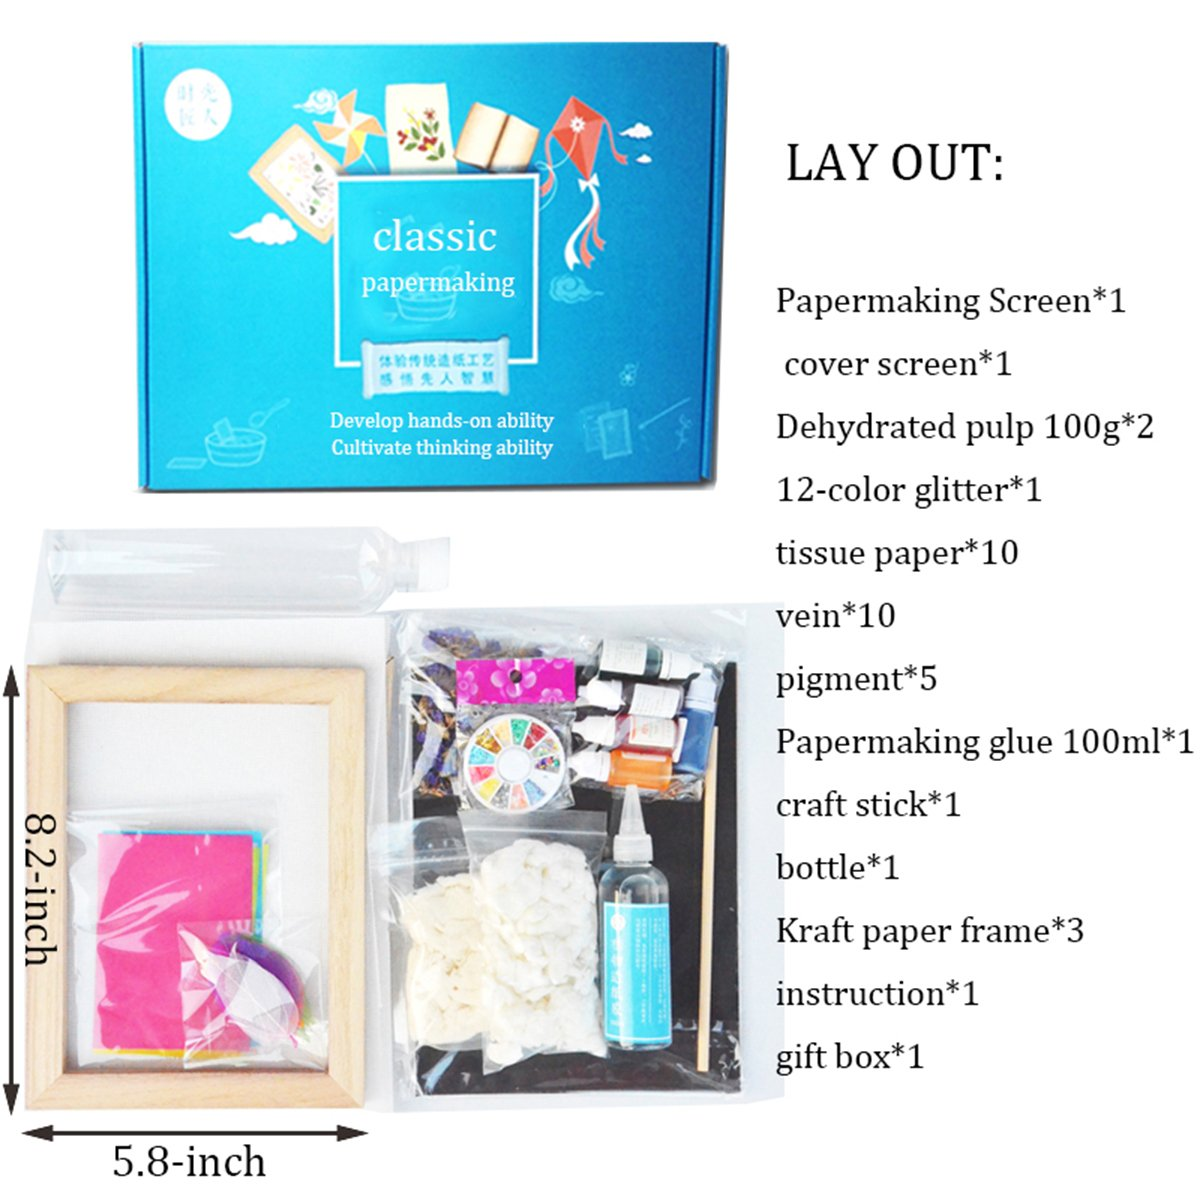 Complete Handmold Papermaking Kit Handmade Paper Art Crafts Set for Children with Screen Frame Great Gifts for Girls Boys Makes 5.8 x 8.2 inch Paper (A5) by qiaoniuniu (Image #2)